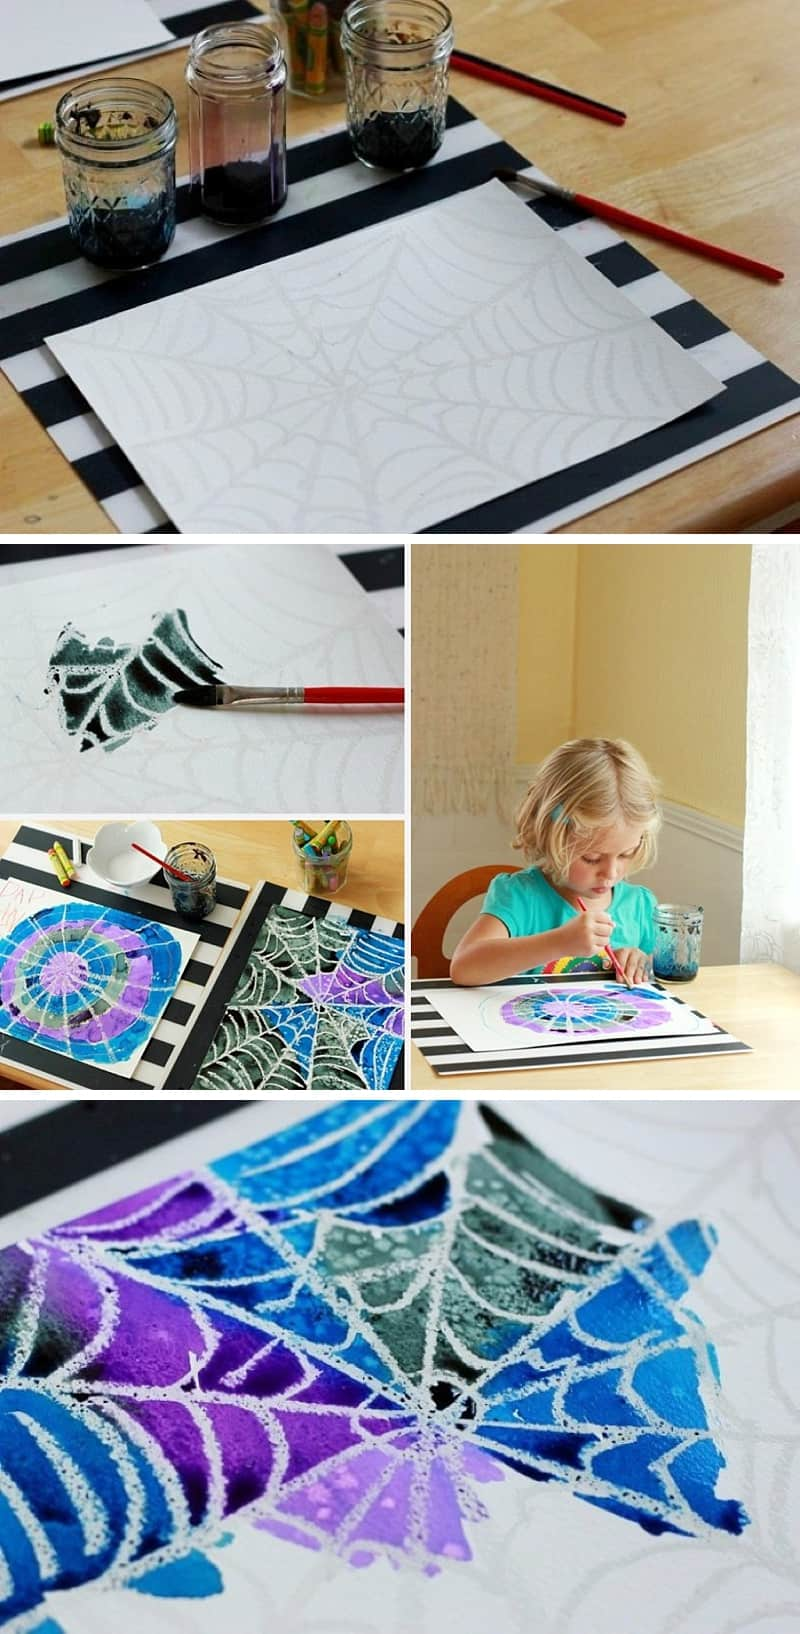 Spider Web Art Project for Children with Watercolor Resist *Great Halloween idea for kids